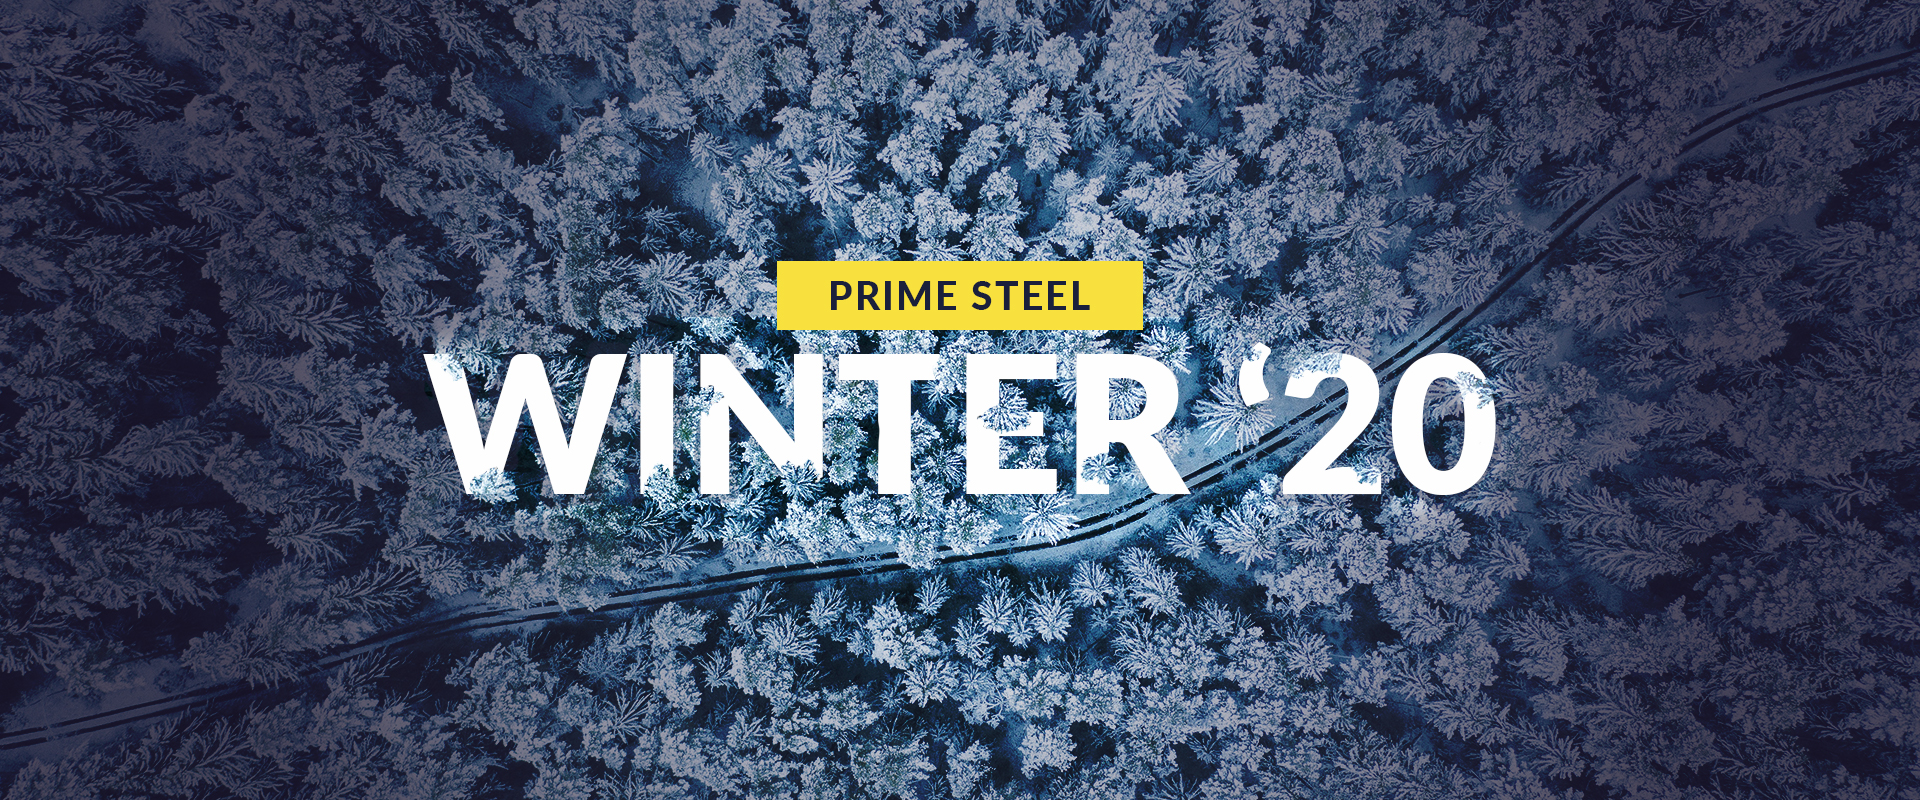 Antavo's Prime Steel Winter Product Release is all about the enterprise-grade offer management: why it is important, what offer types are available, and how to create a synergy.